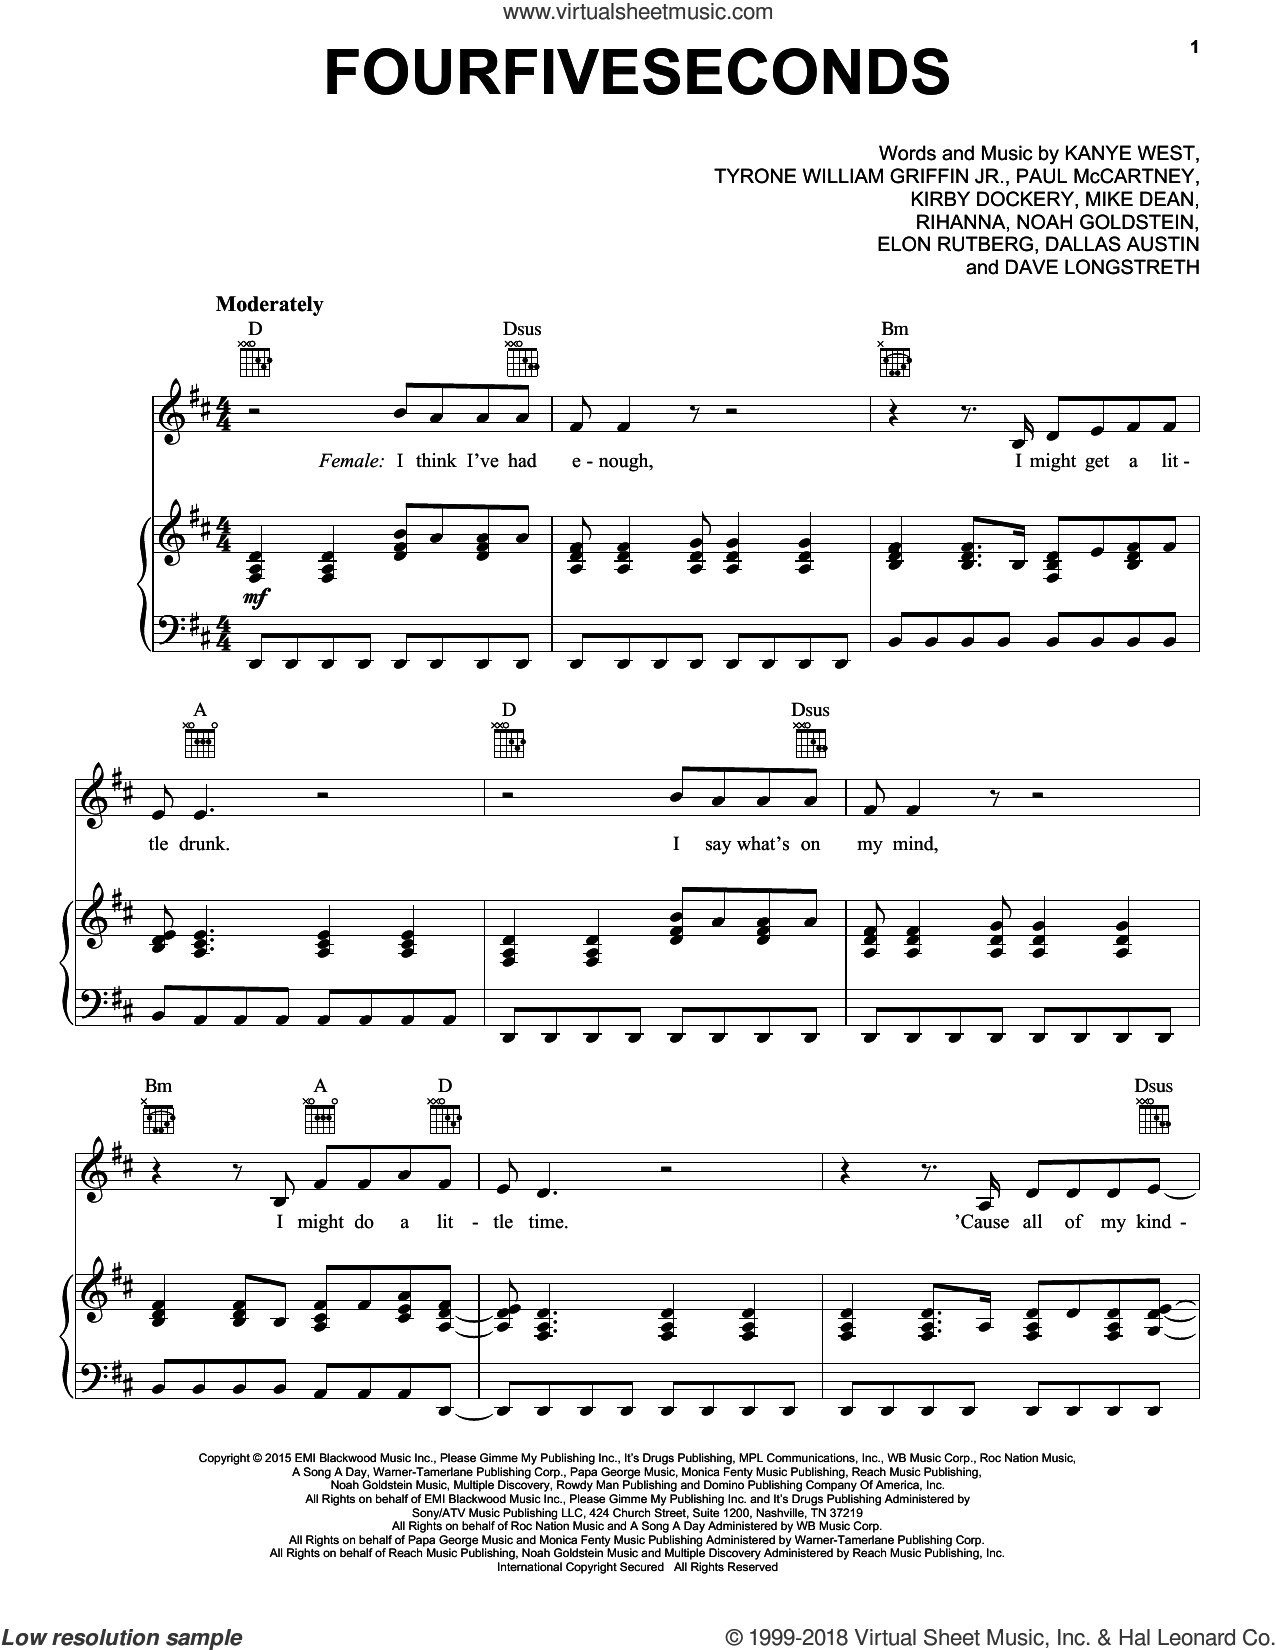 FourFiveSeconds sheet music for voice, piano or guitar by Rihanna & Kanye West & Paul McCartney, Rihanna, Dallas Austin, Dave Longstreth, Elon Rutberg, Kanye West, Kirby Lauryen, Mike Dean, Noah Goldstein, Paul McCartney and Tyrone William Griffin Jr., intermediate skill level